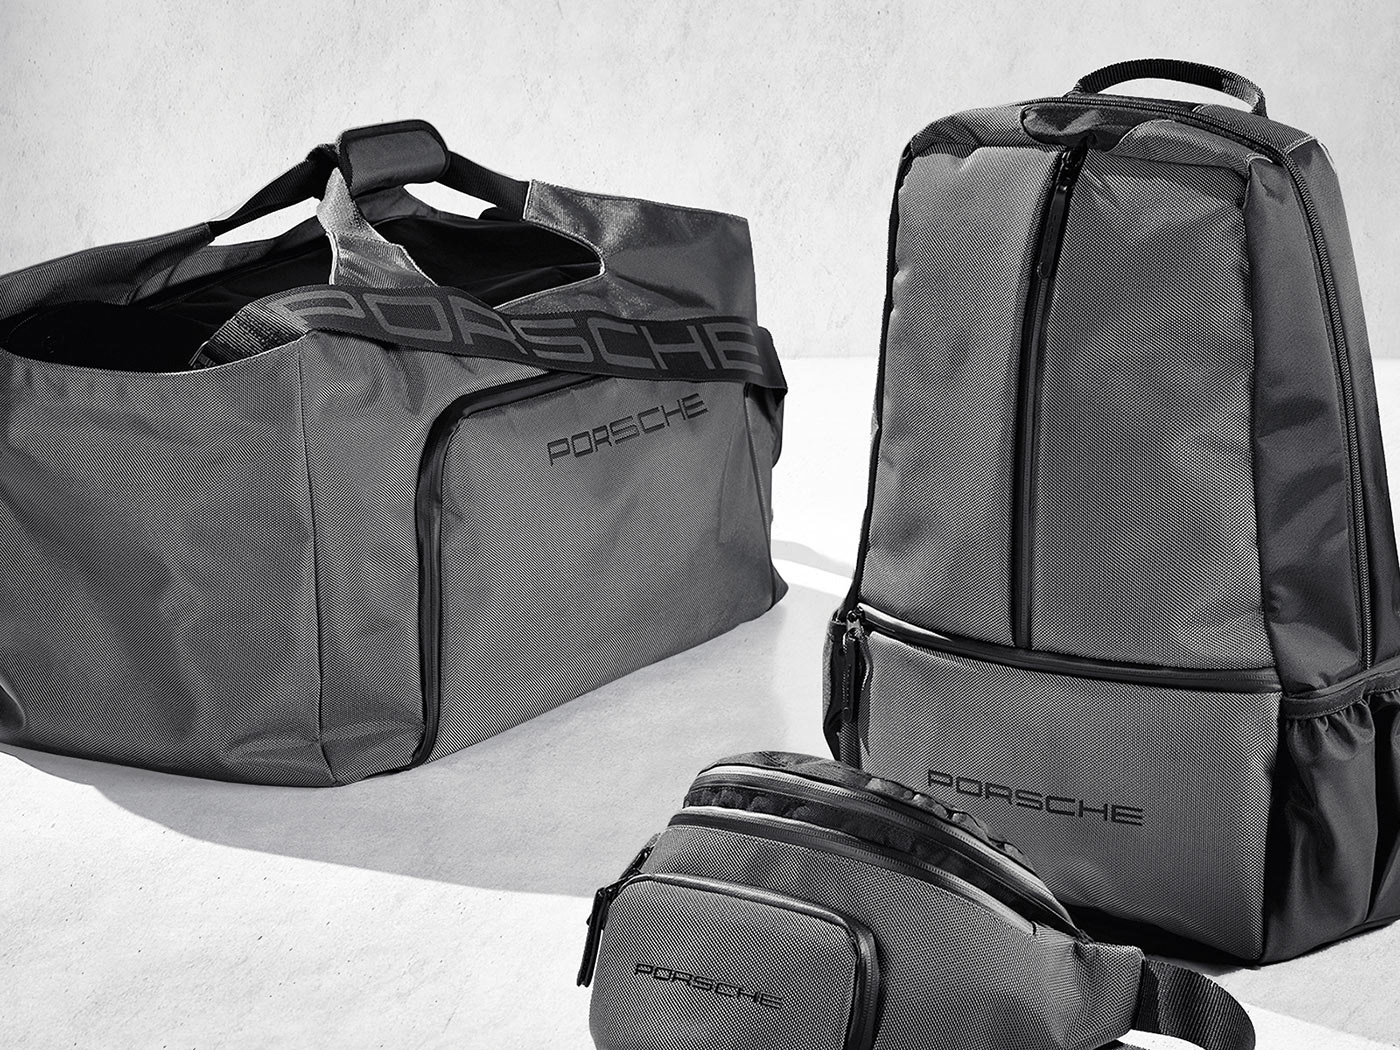 PORSCHE – PDDS Sports Luggage Collection